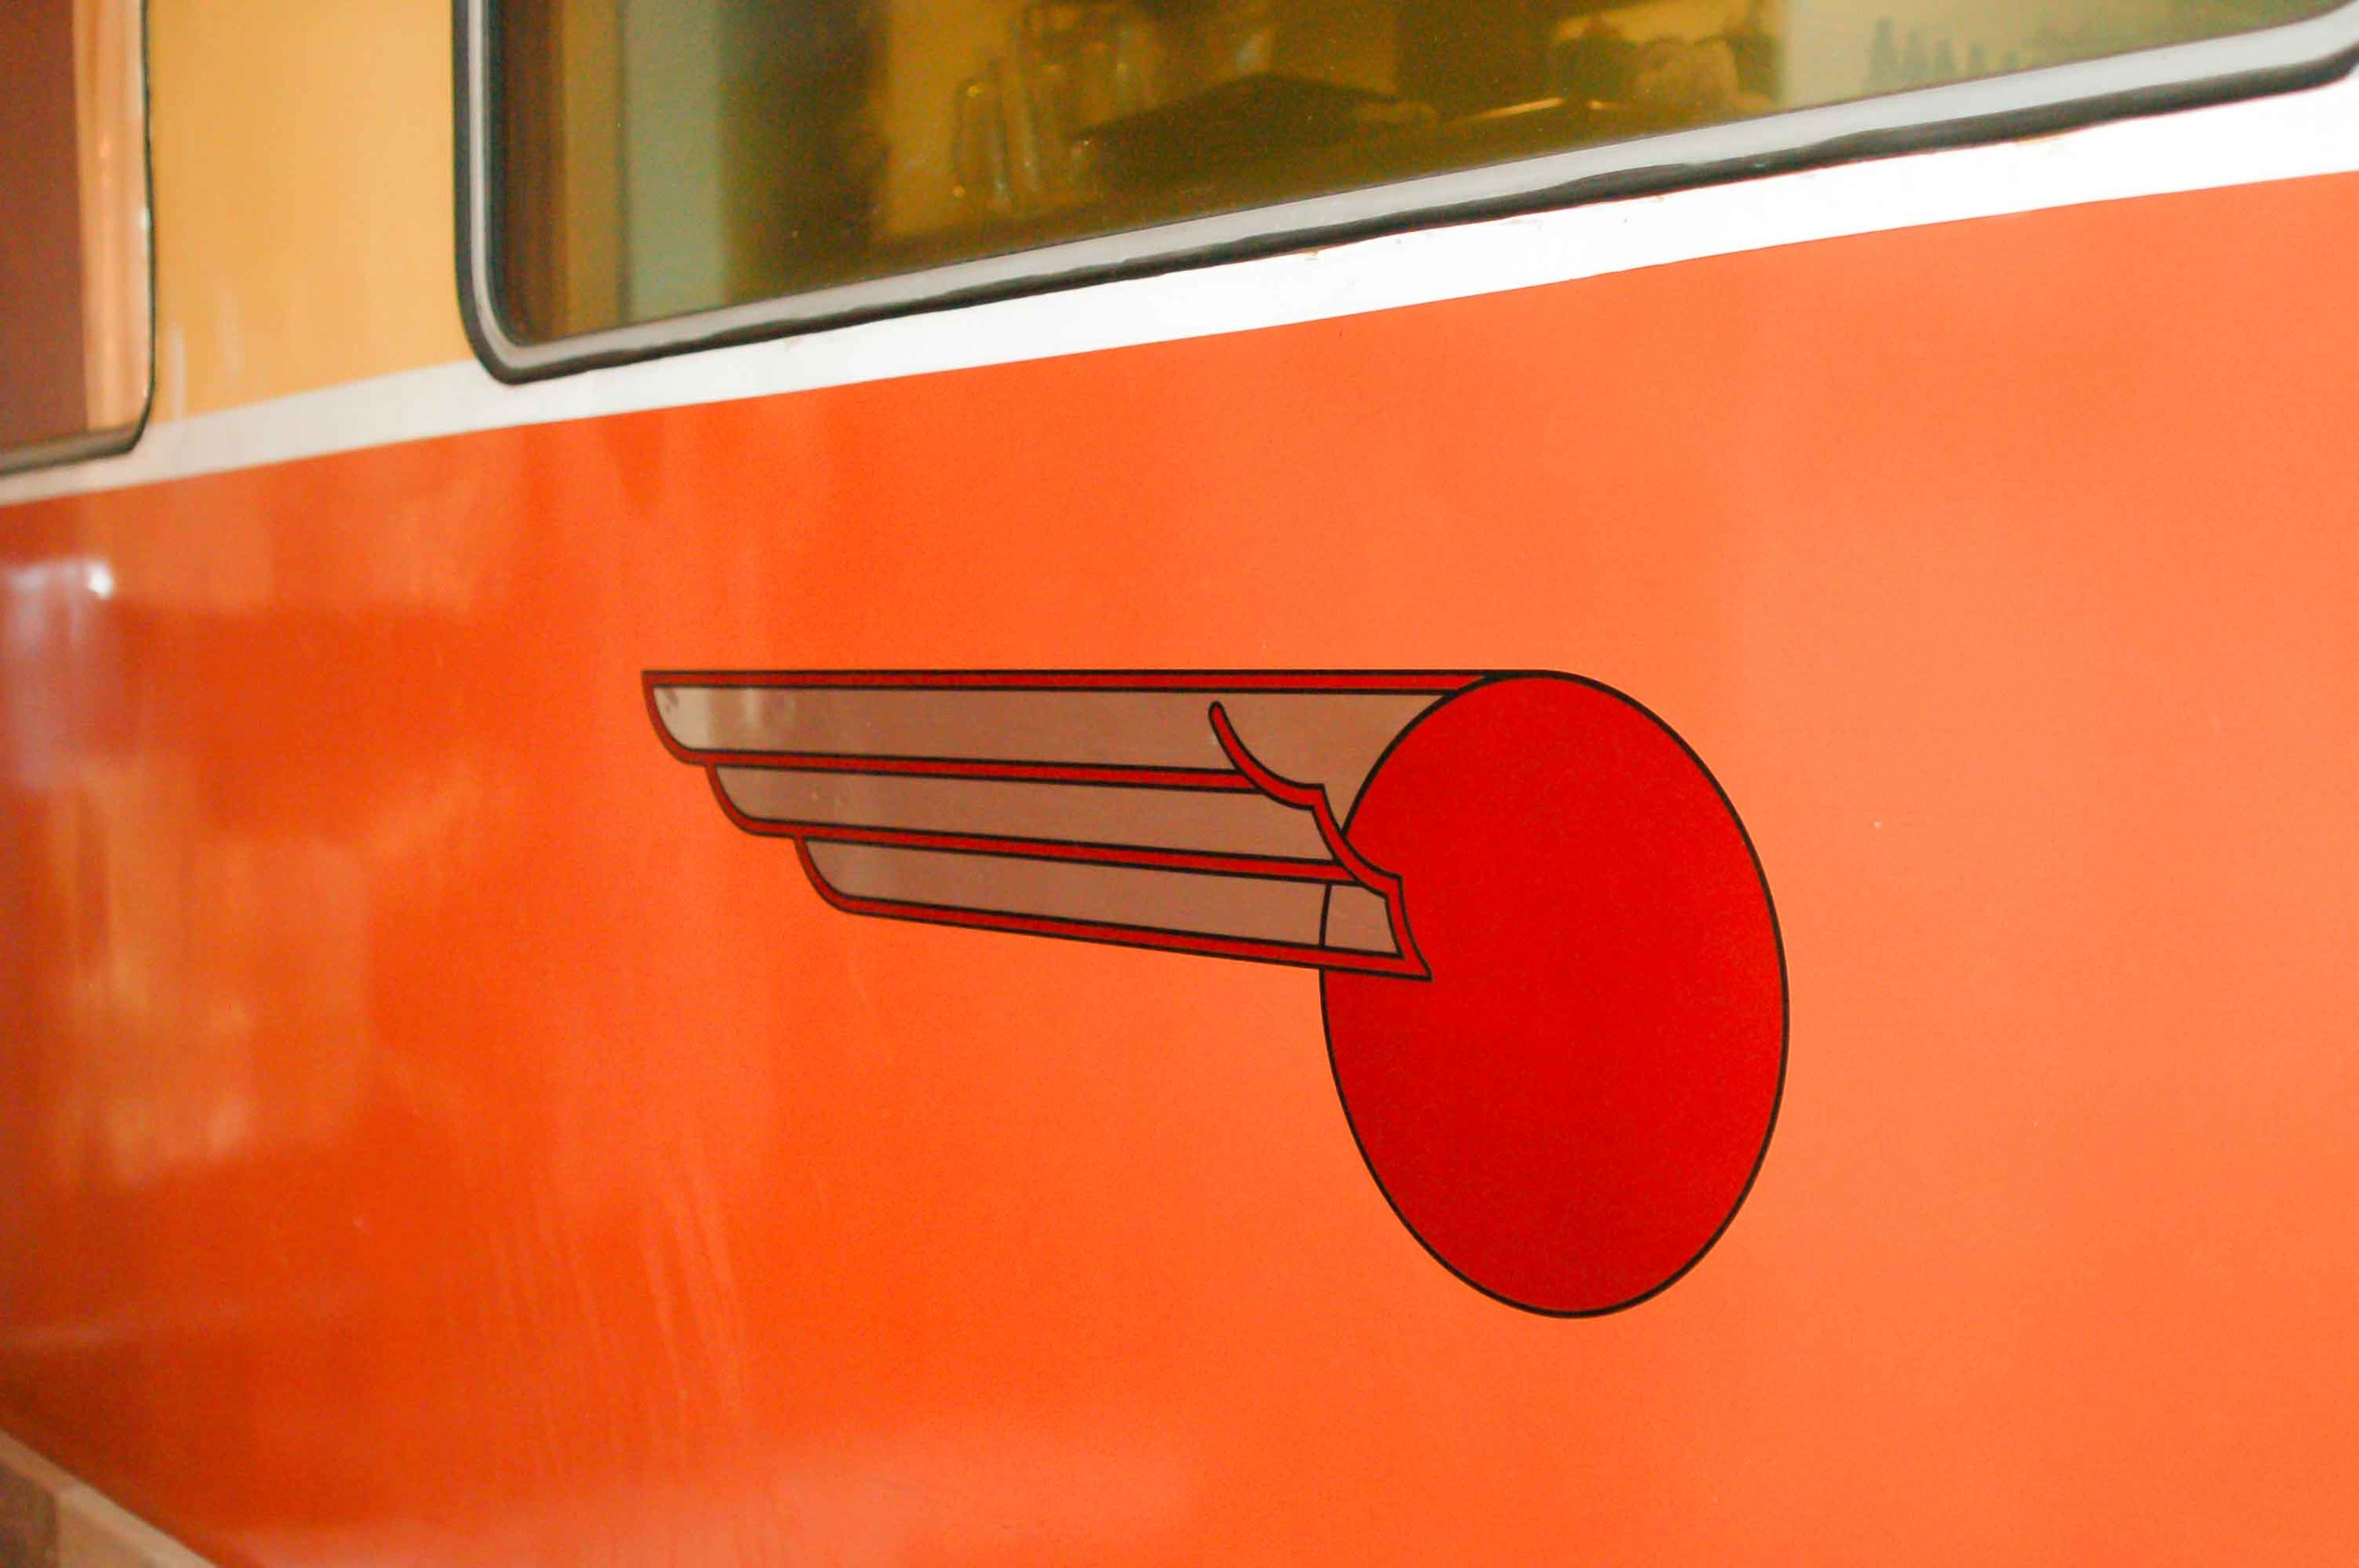 Rail car detail